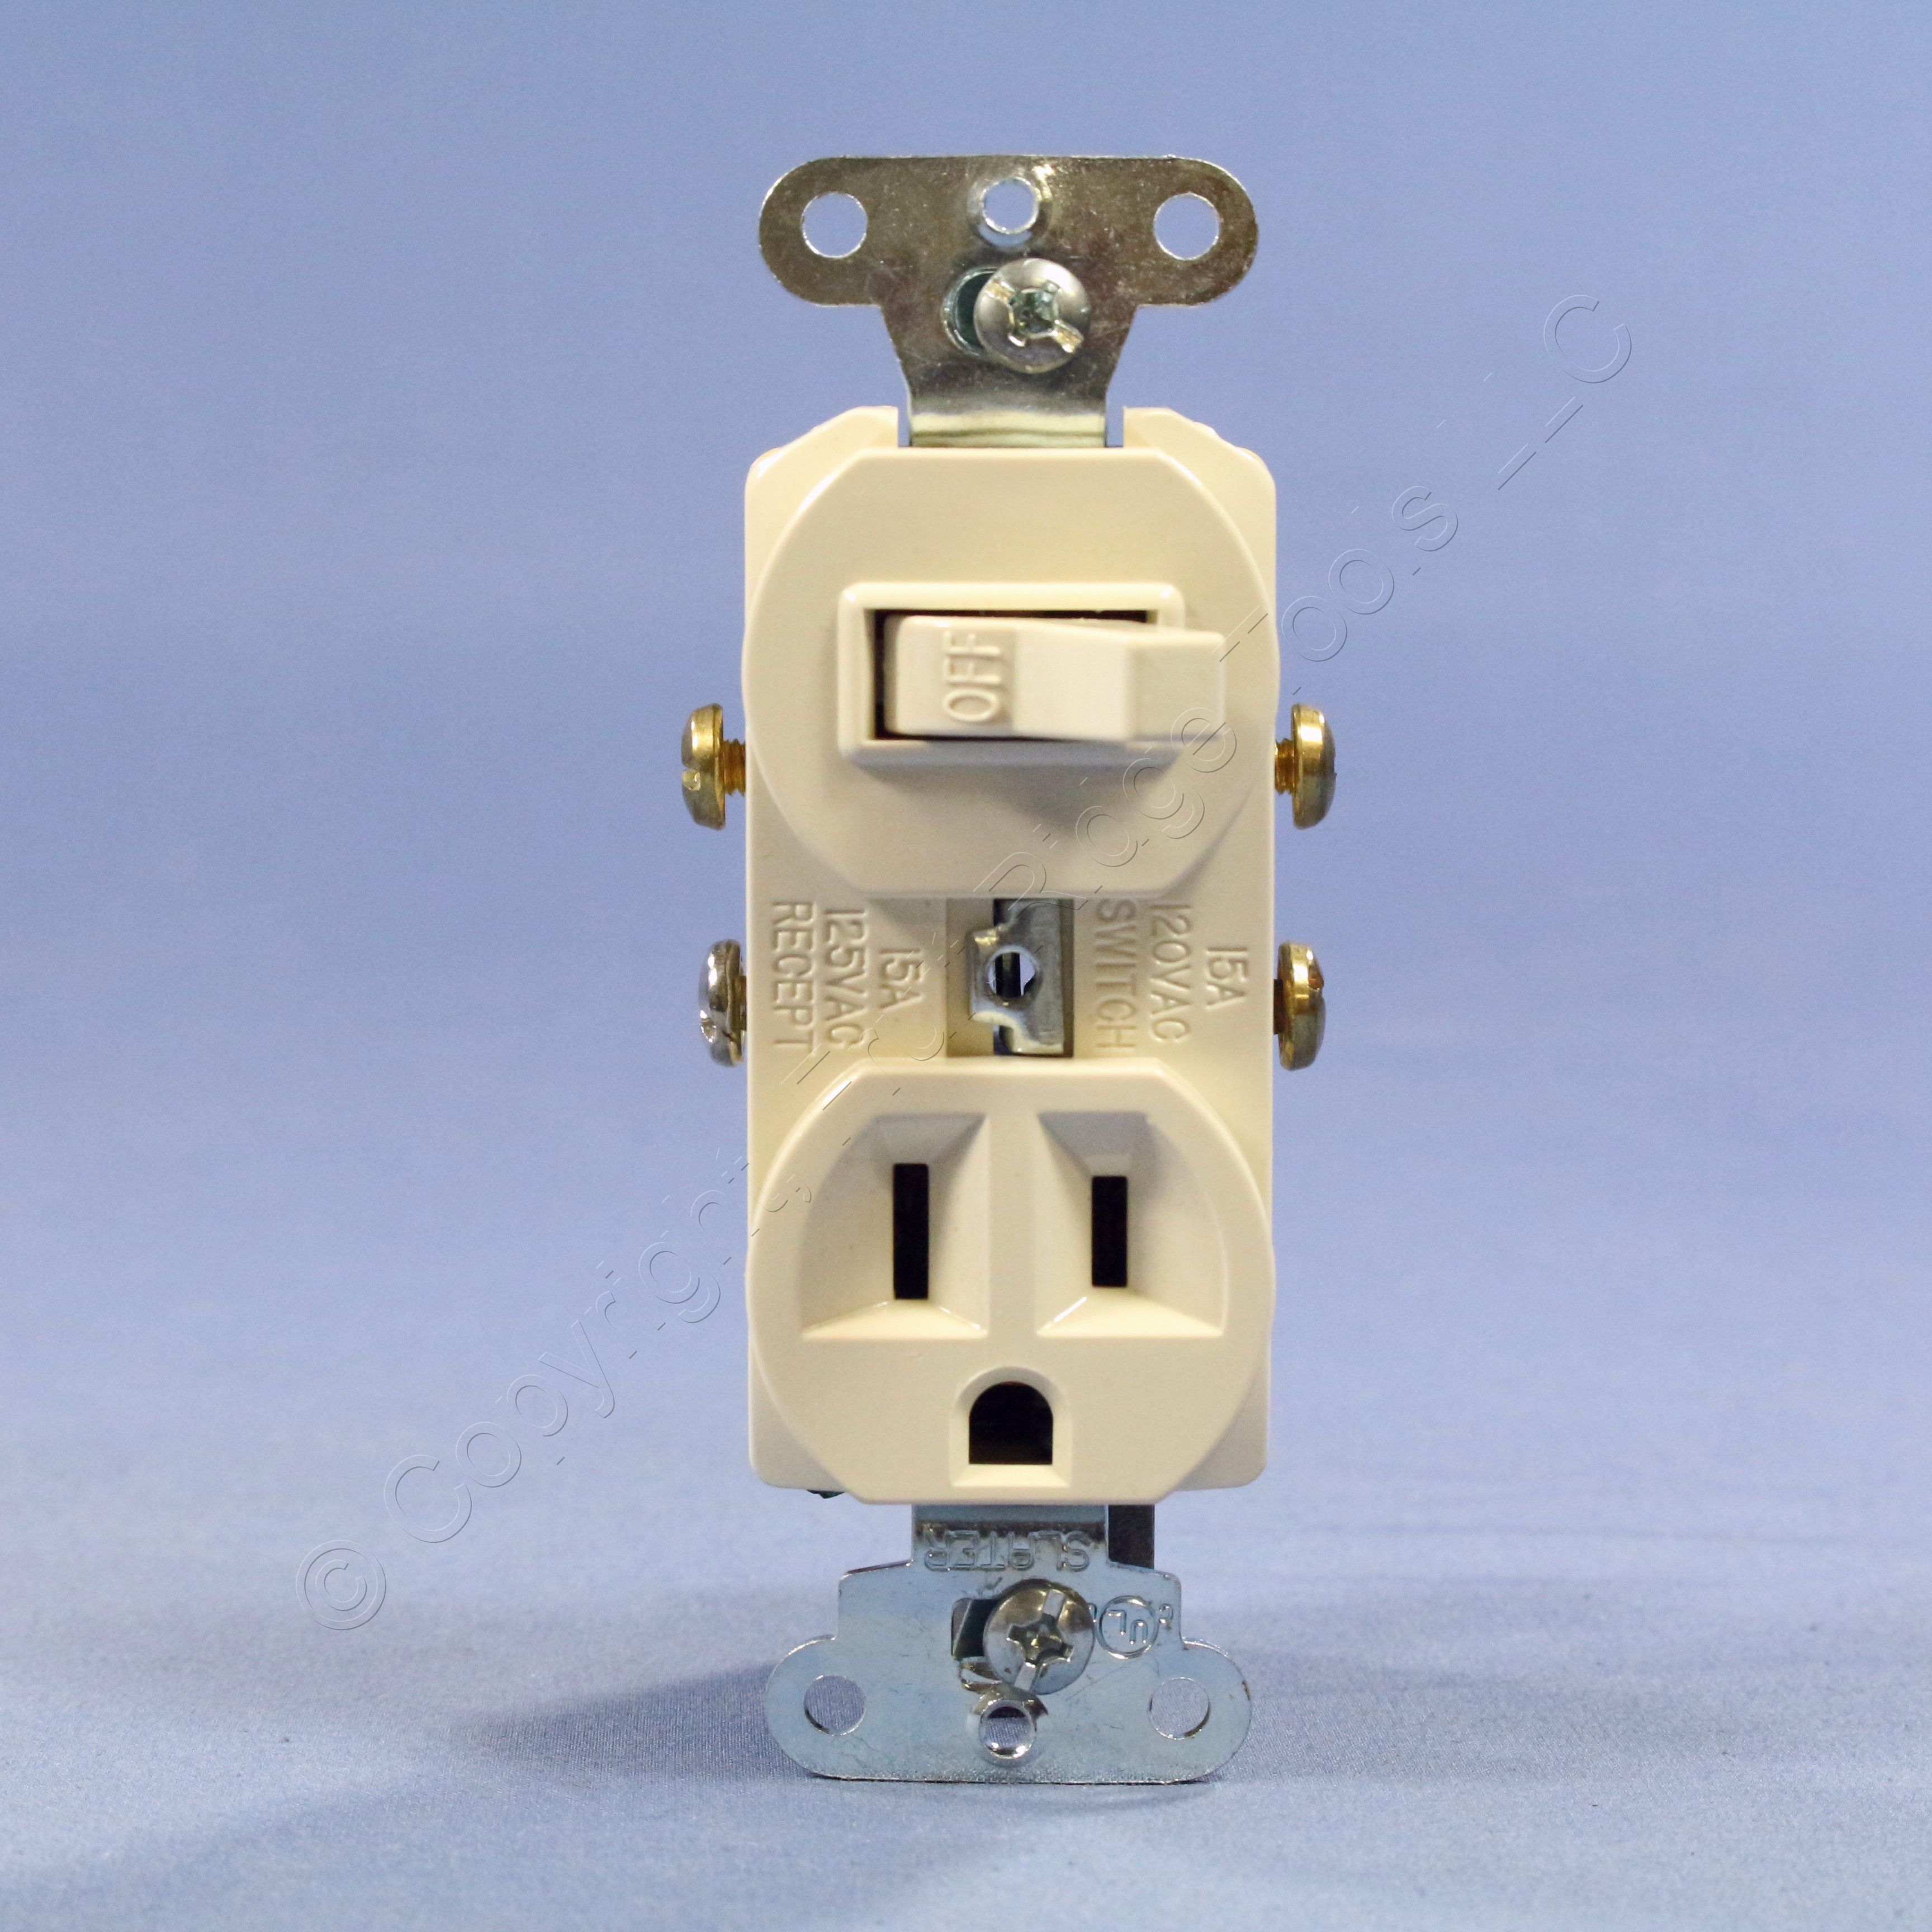 leviton combination switch outlet wiring diagram msd t5225 light